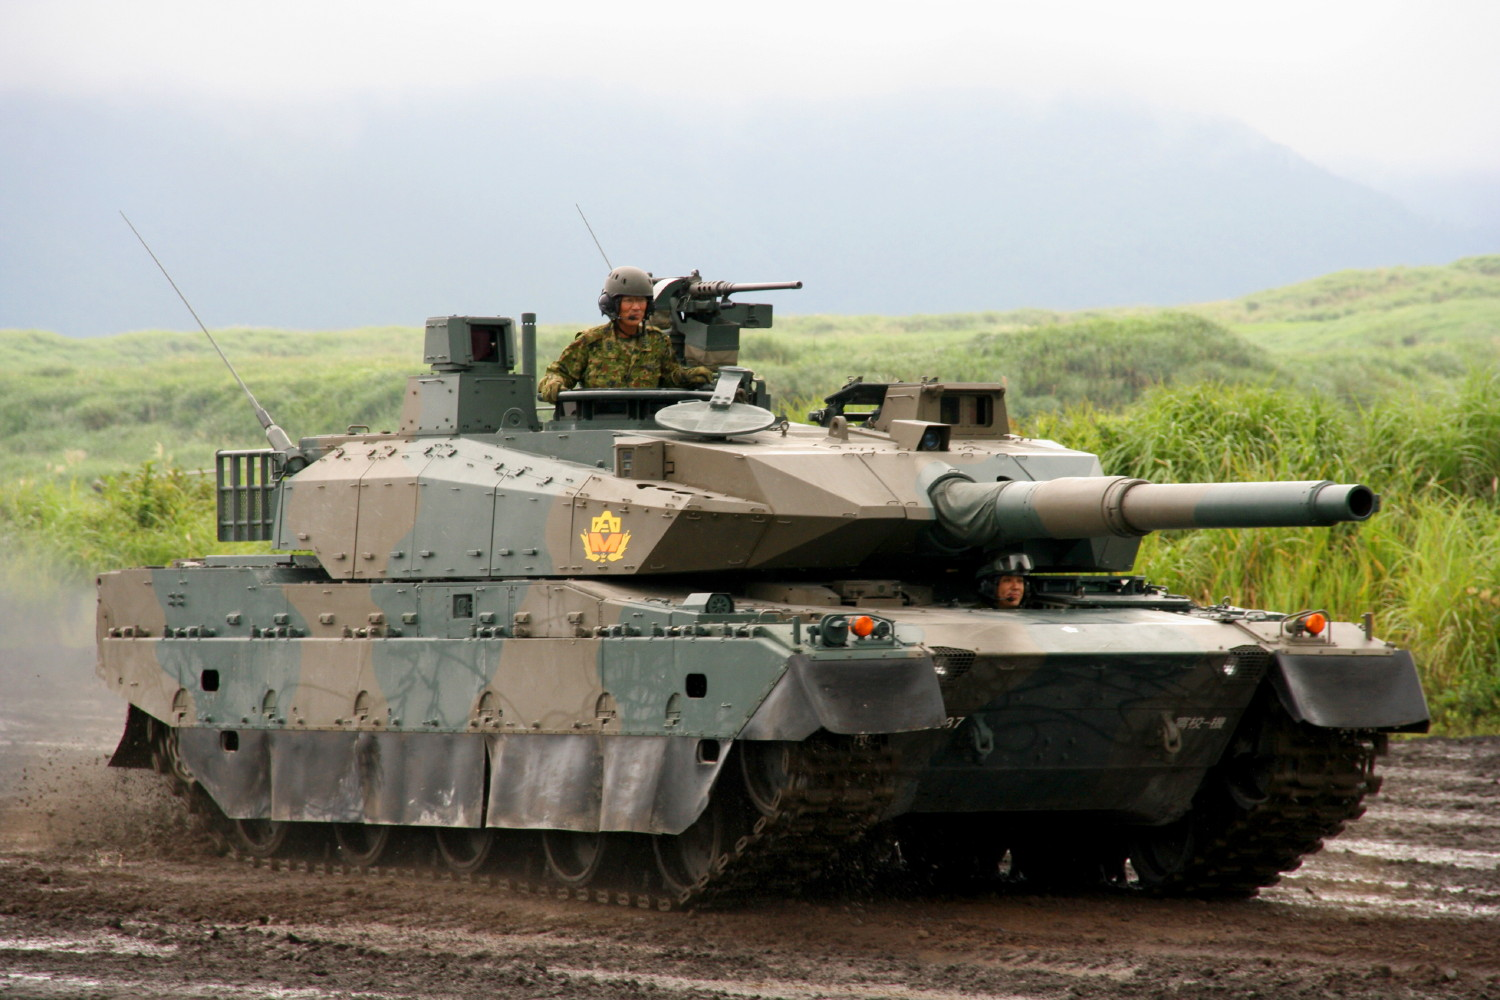 military tanks battlefield - photo #3